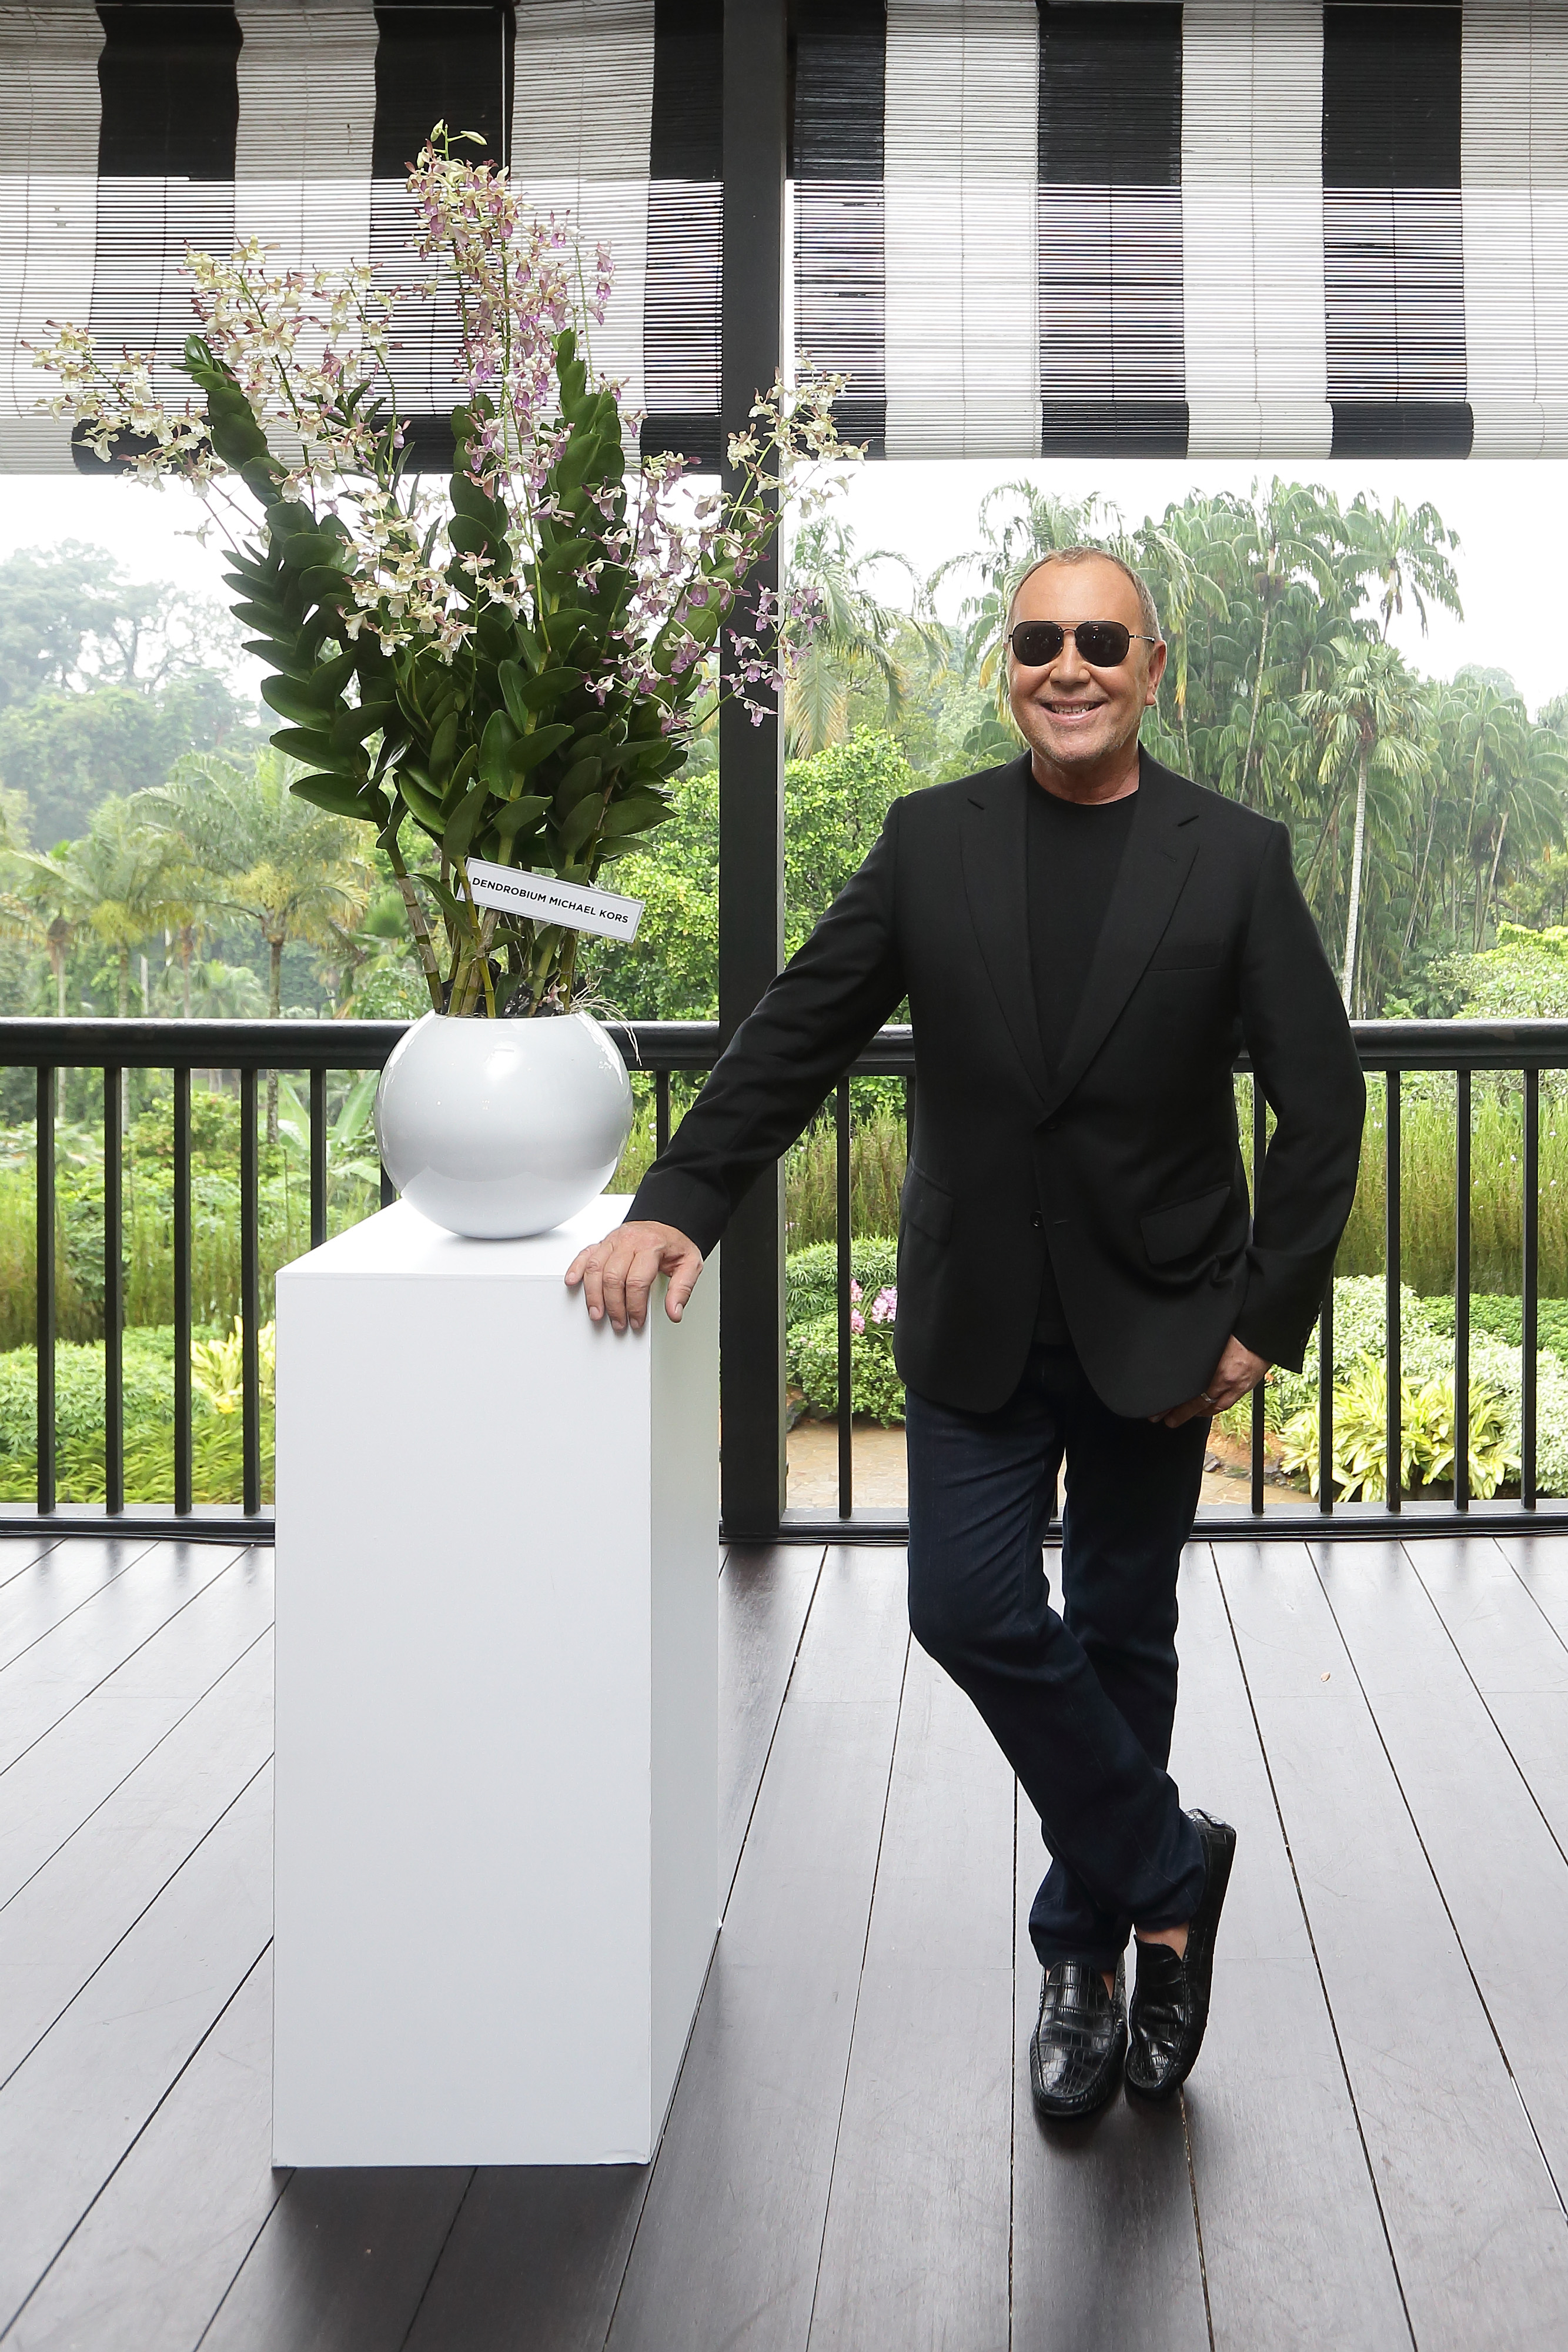 SINGAPORE - NOVEMBER 14: American designer, Michael Kors poses for a photo with the Dendrobium Michael Kors, an orchid that was named after him at the National Orchid Garden on November 14, 2016 in Singapore. (Photo by Suhaimi Abdullah/Getty Images for Michael Kors)